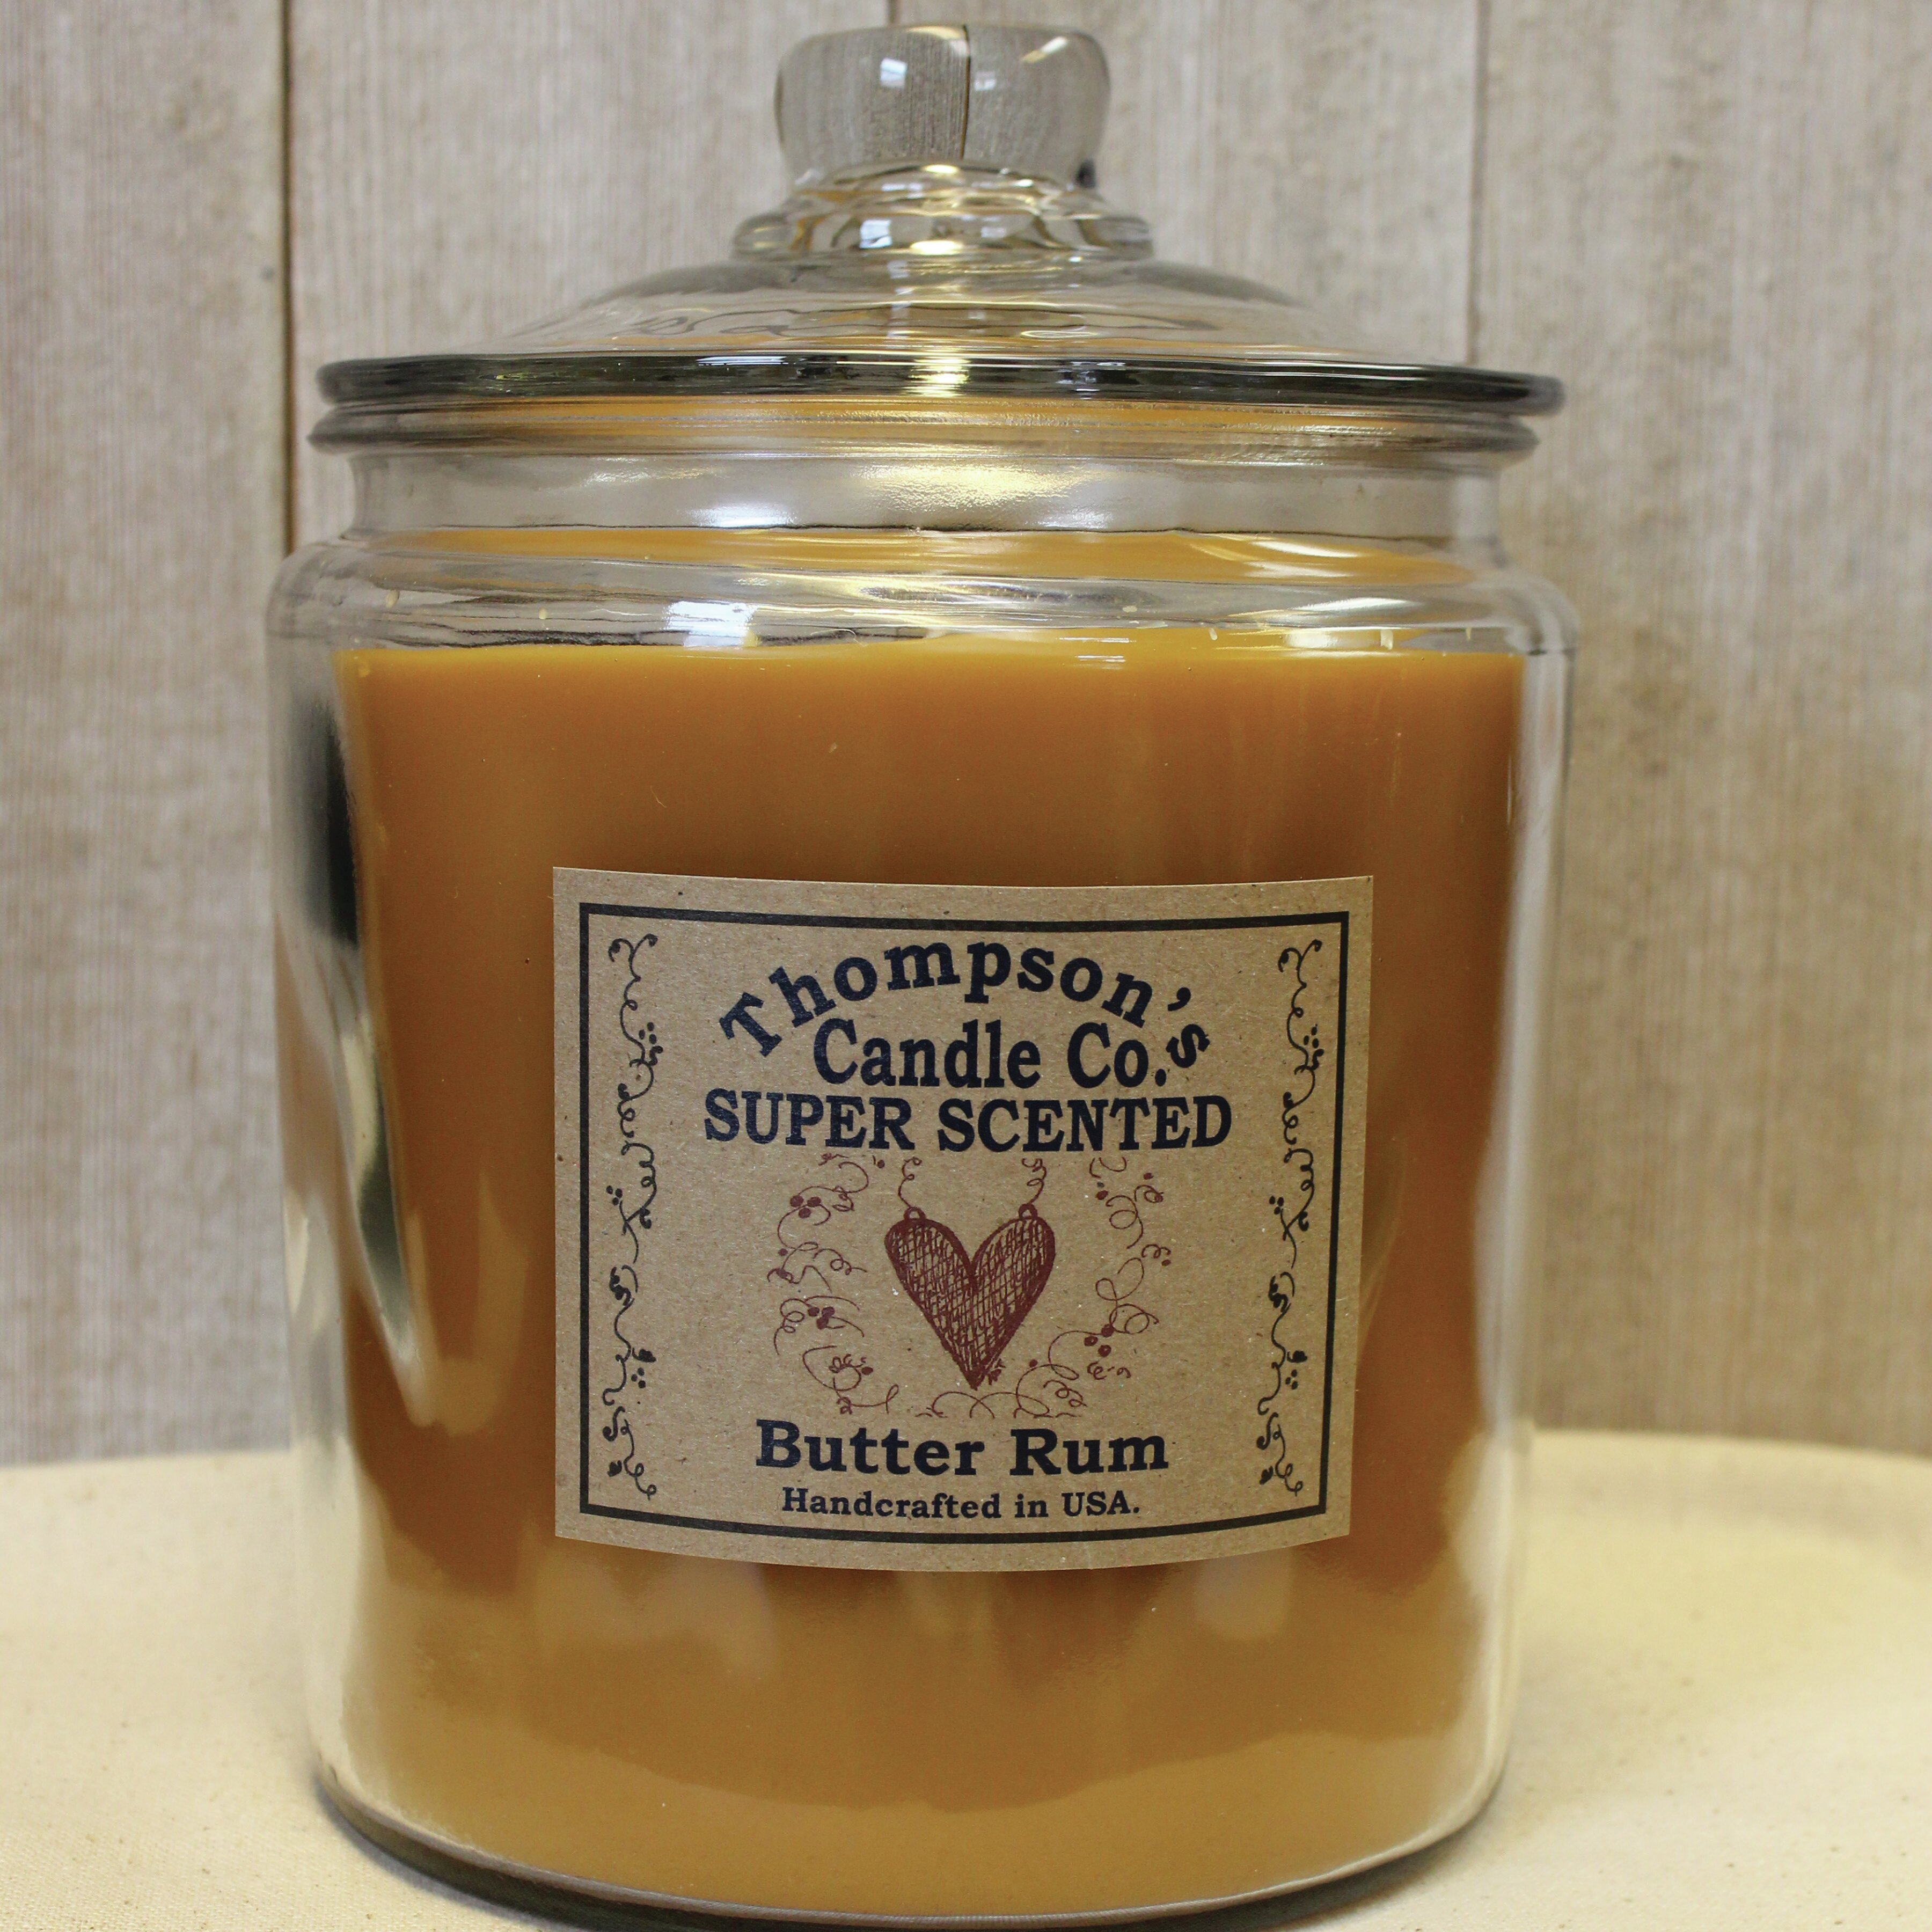 Thompson Scandleco Butter Rum Heritage Scented Jar Candle Wayfair